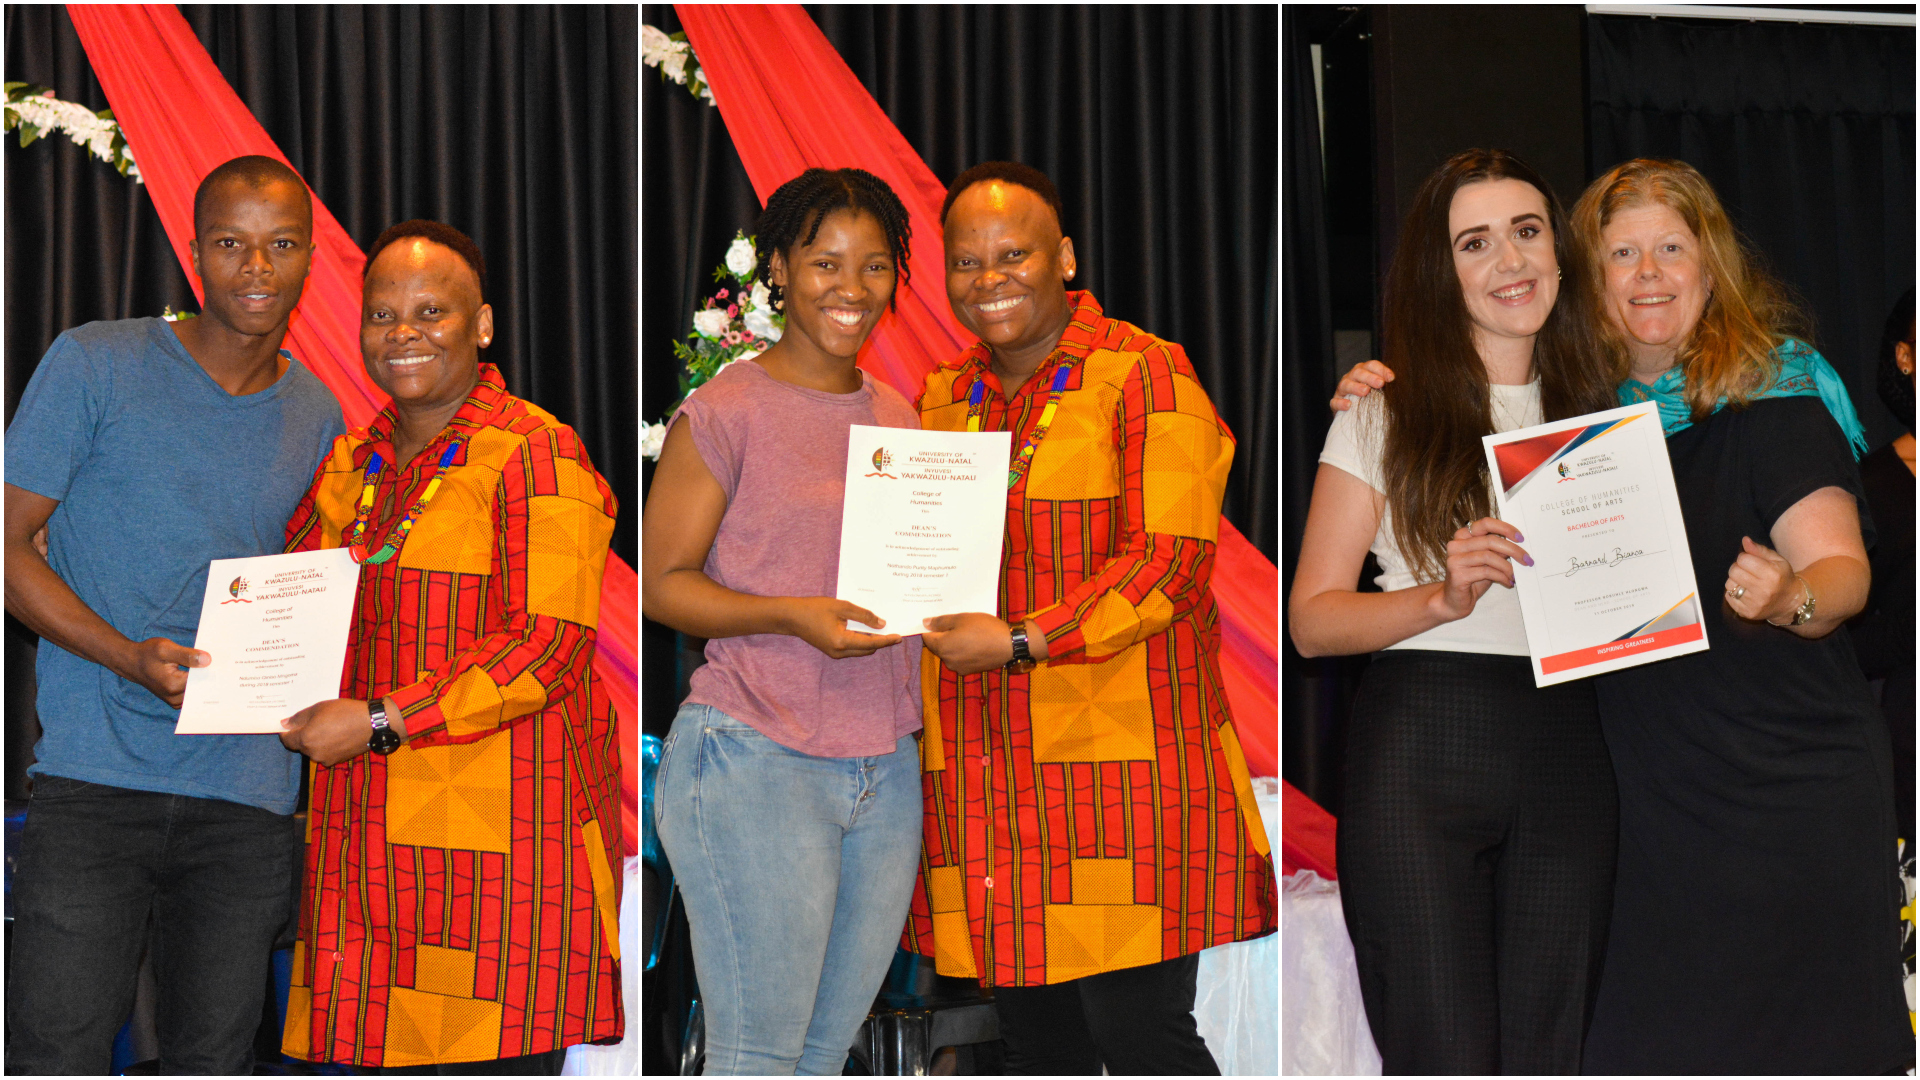 Arts Student Excellence Awards Ignite Passion for Success